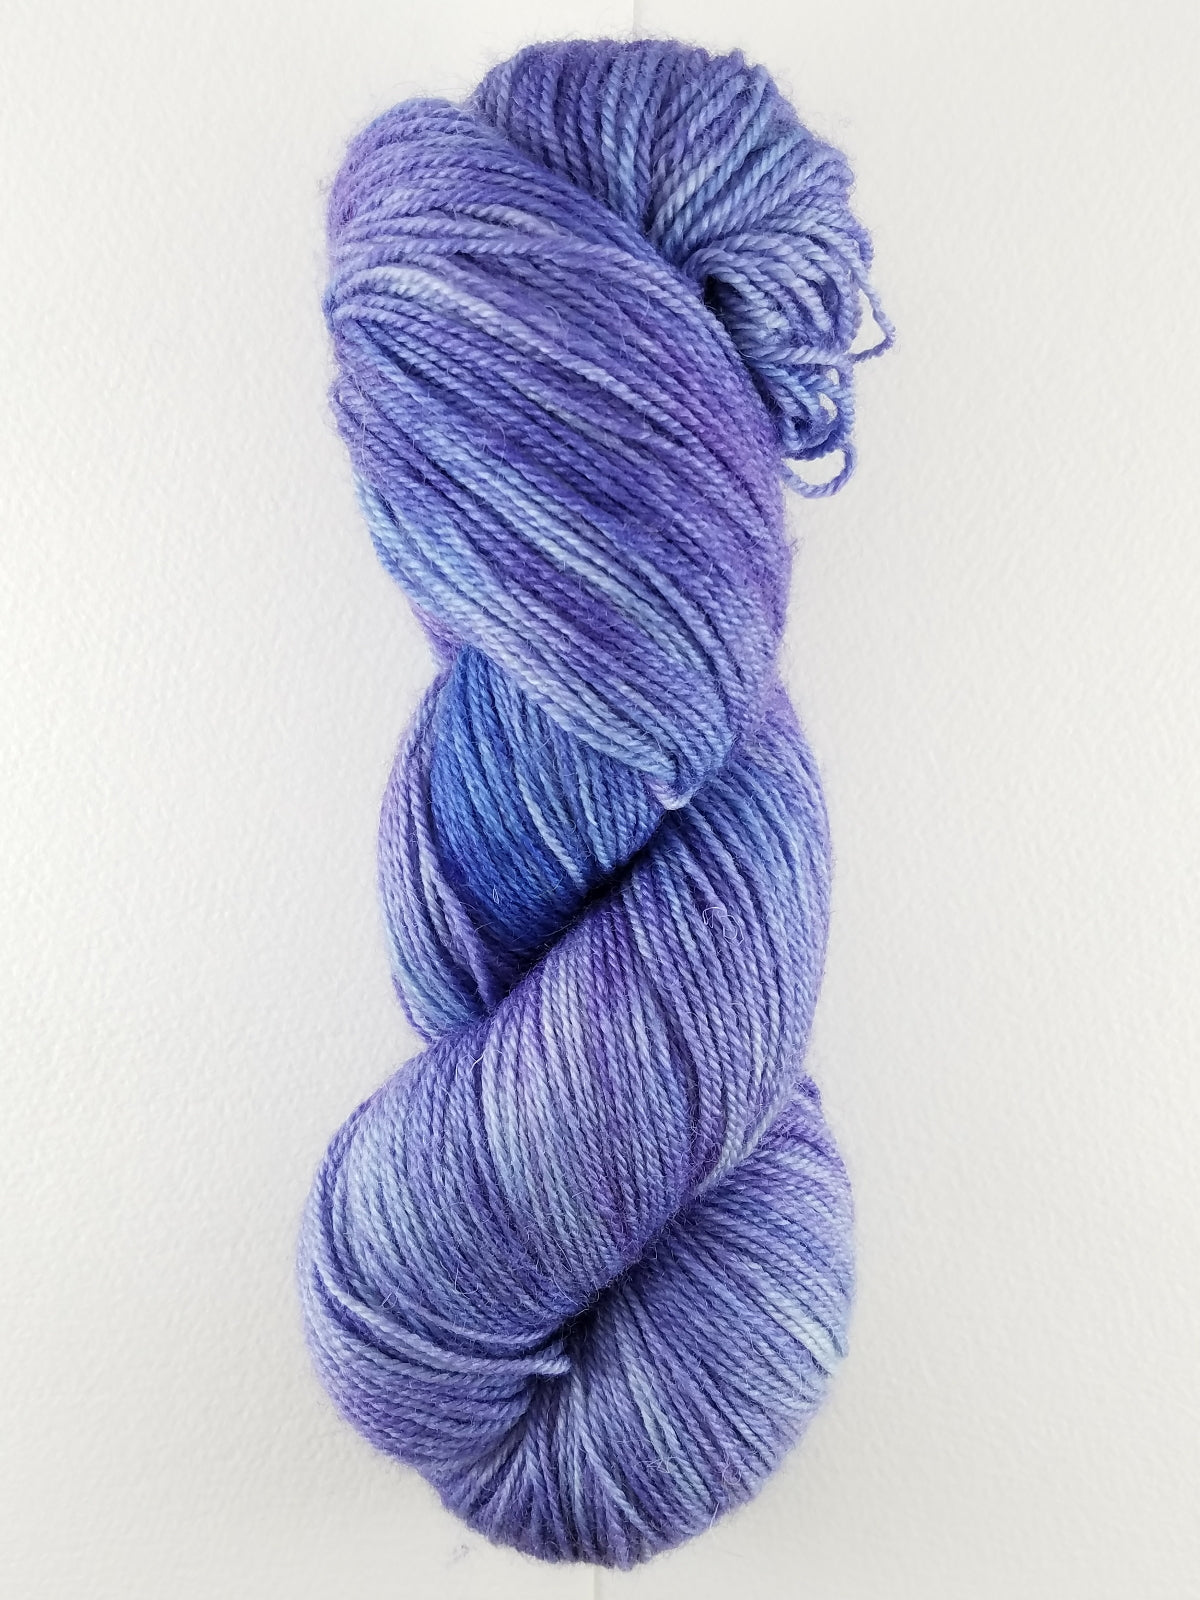 Huckleberry Knits - Willow